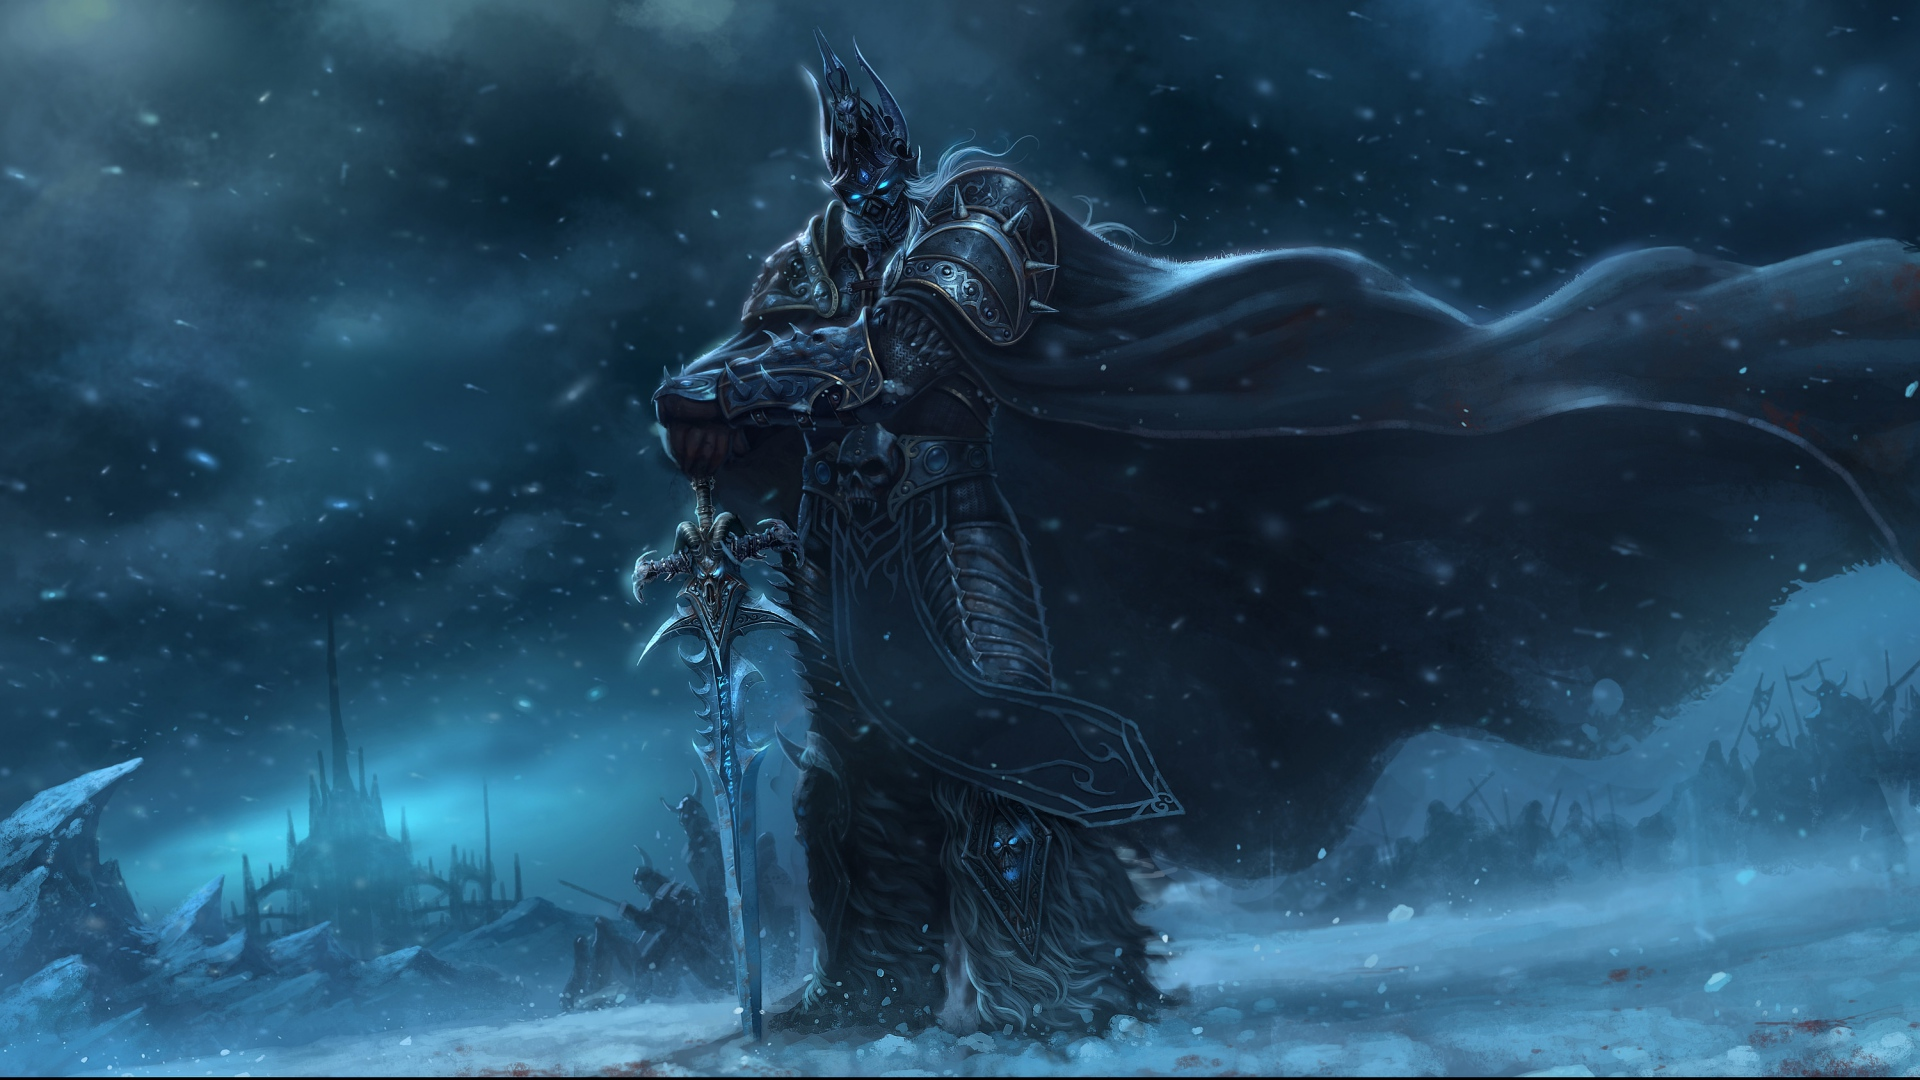 warcraft wow world of warcraft Download 1920x1080 HD Wallpaper 1920x1080